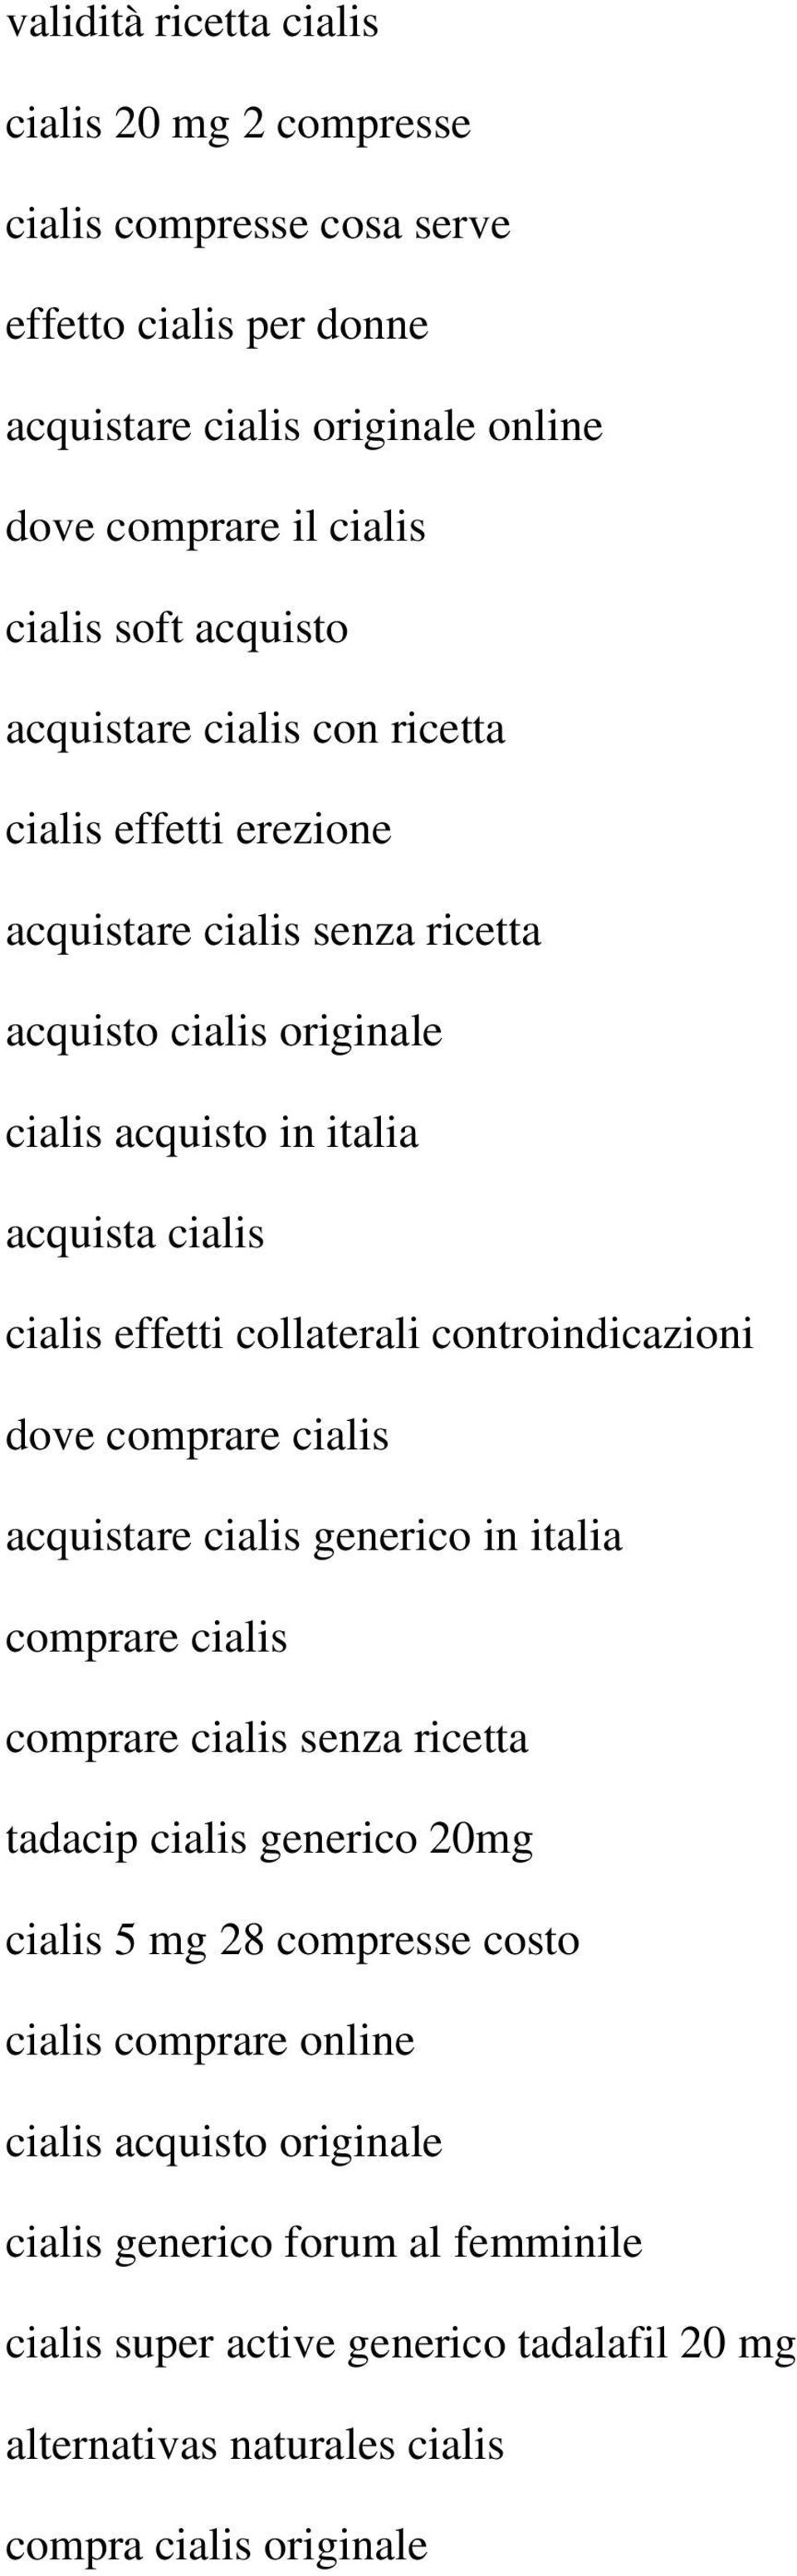 Acquisto cialis on line italia